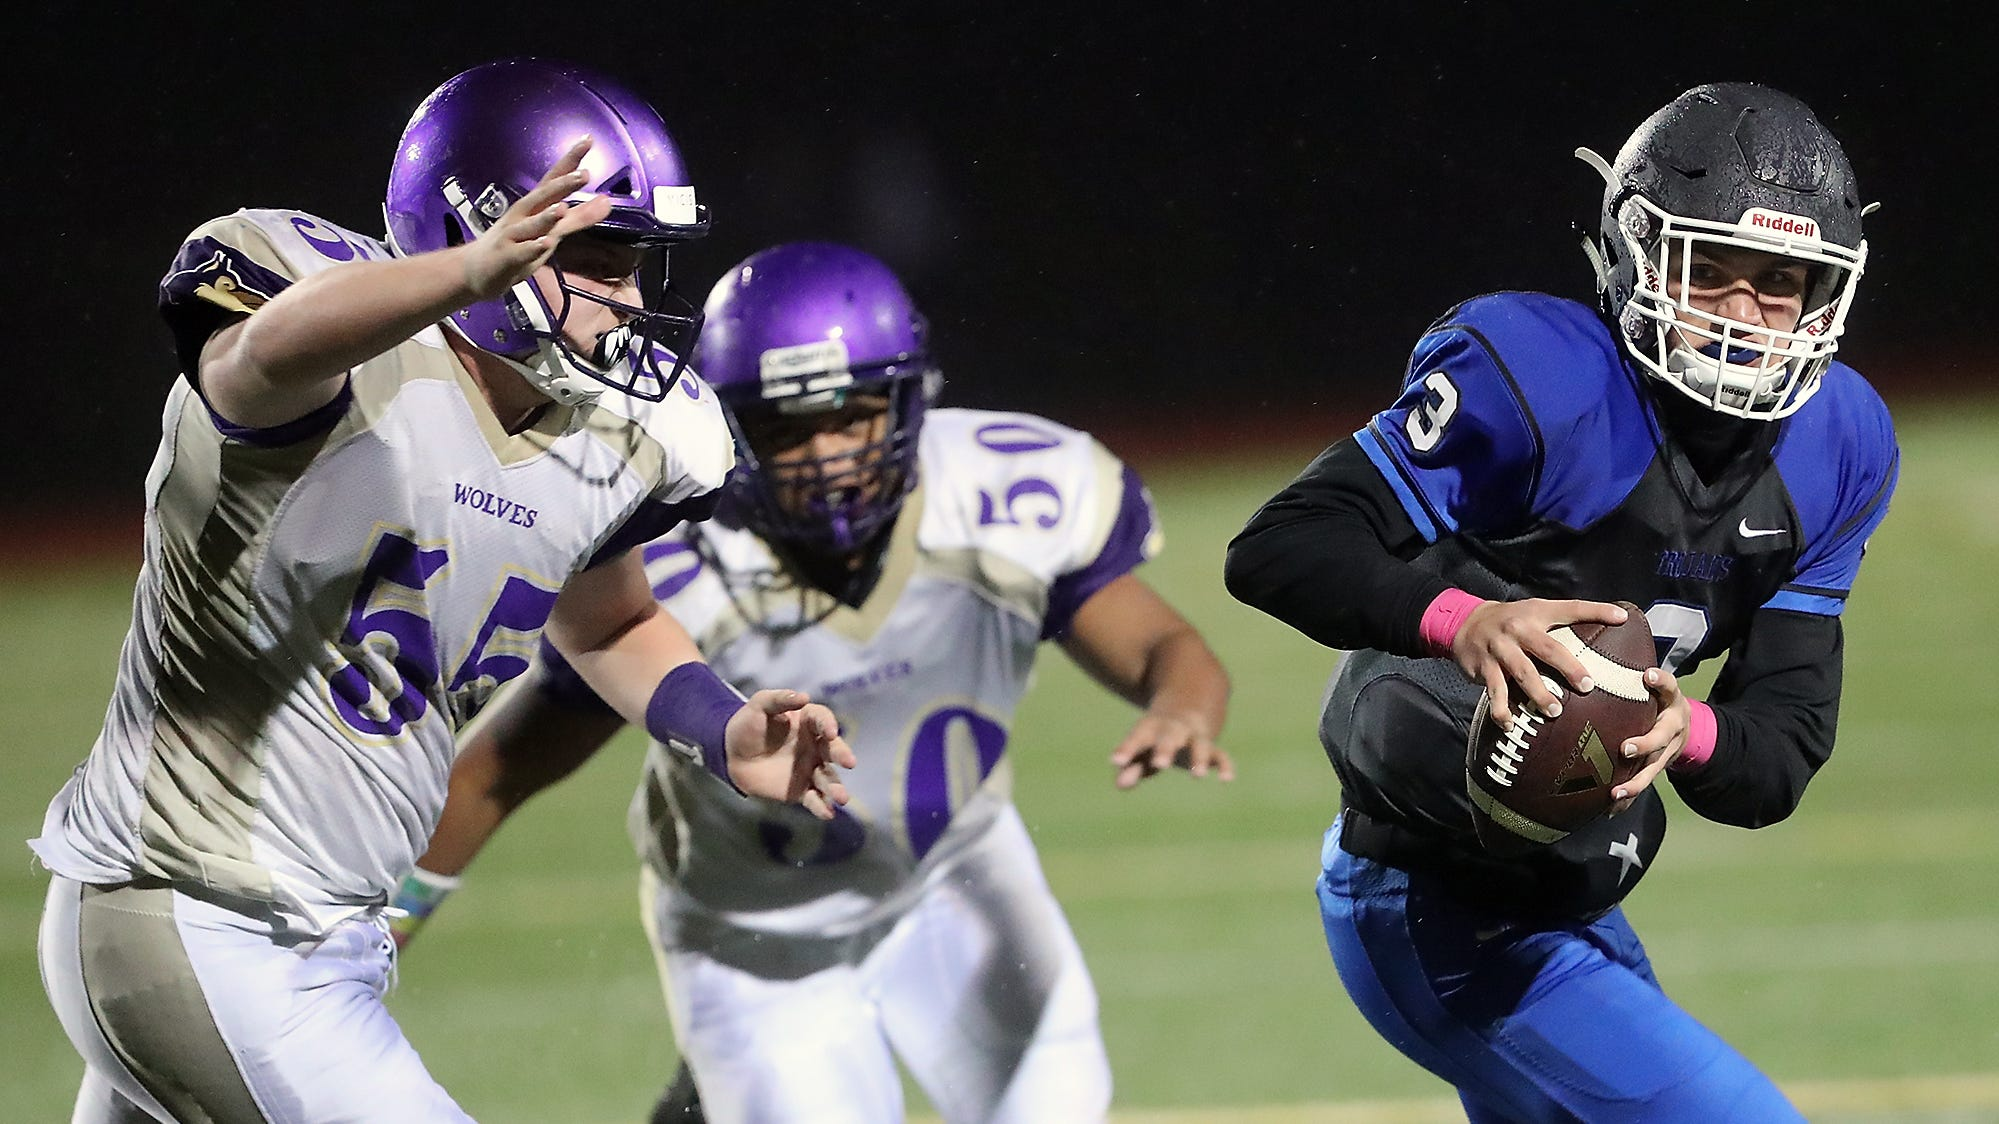 Game of the Week: Playoff feel comes early for Trojans, Knights